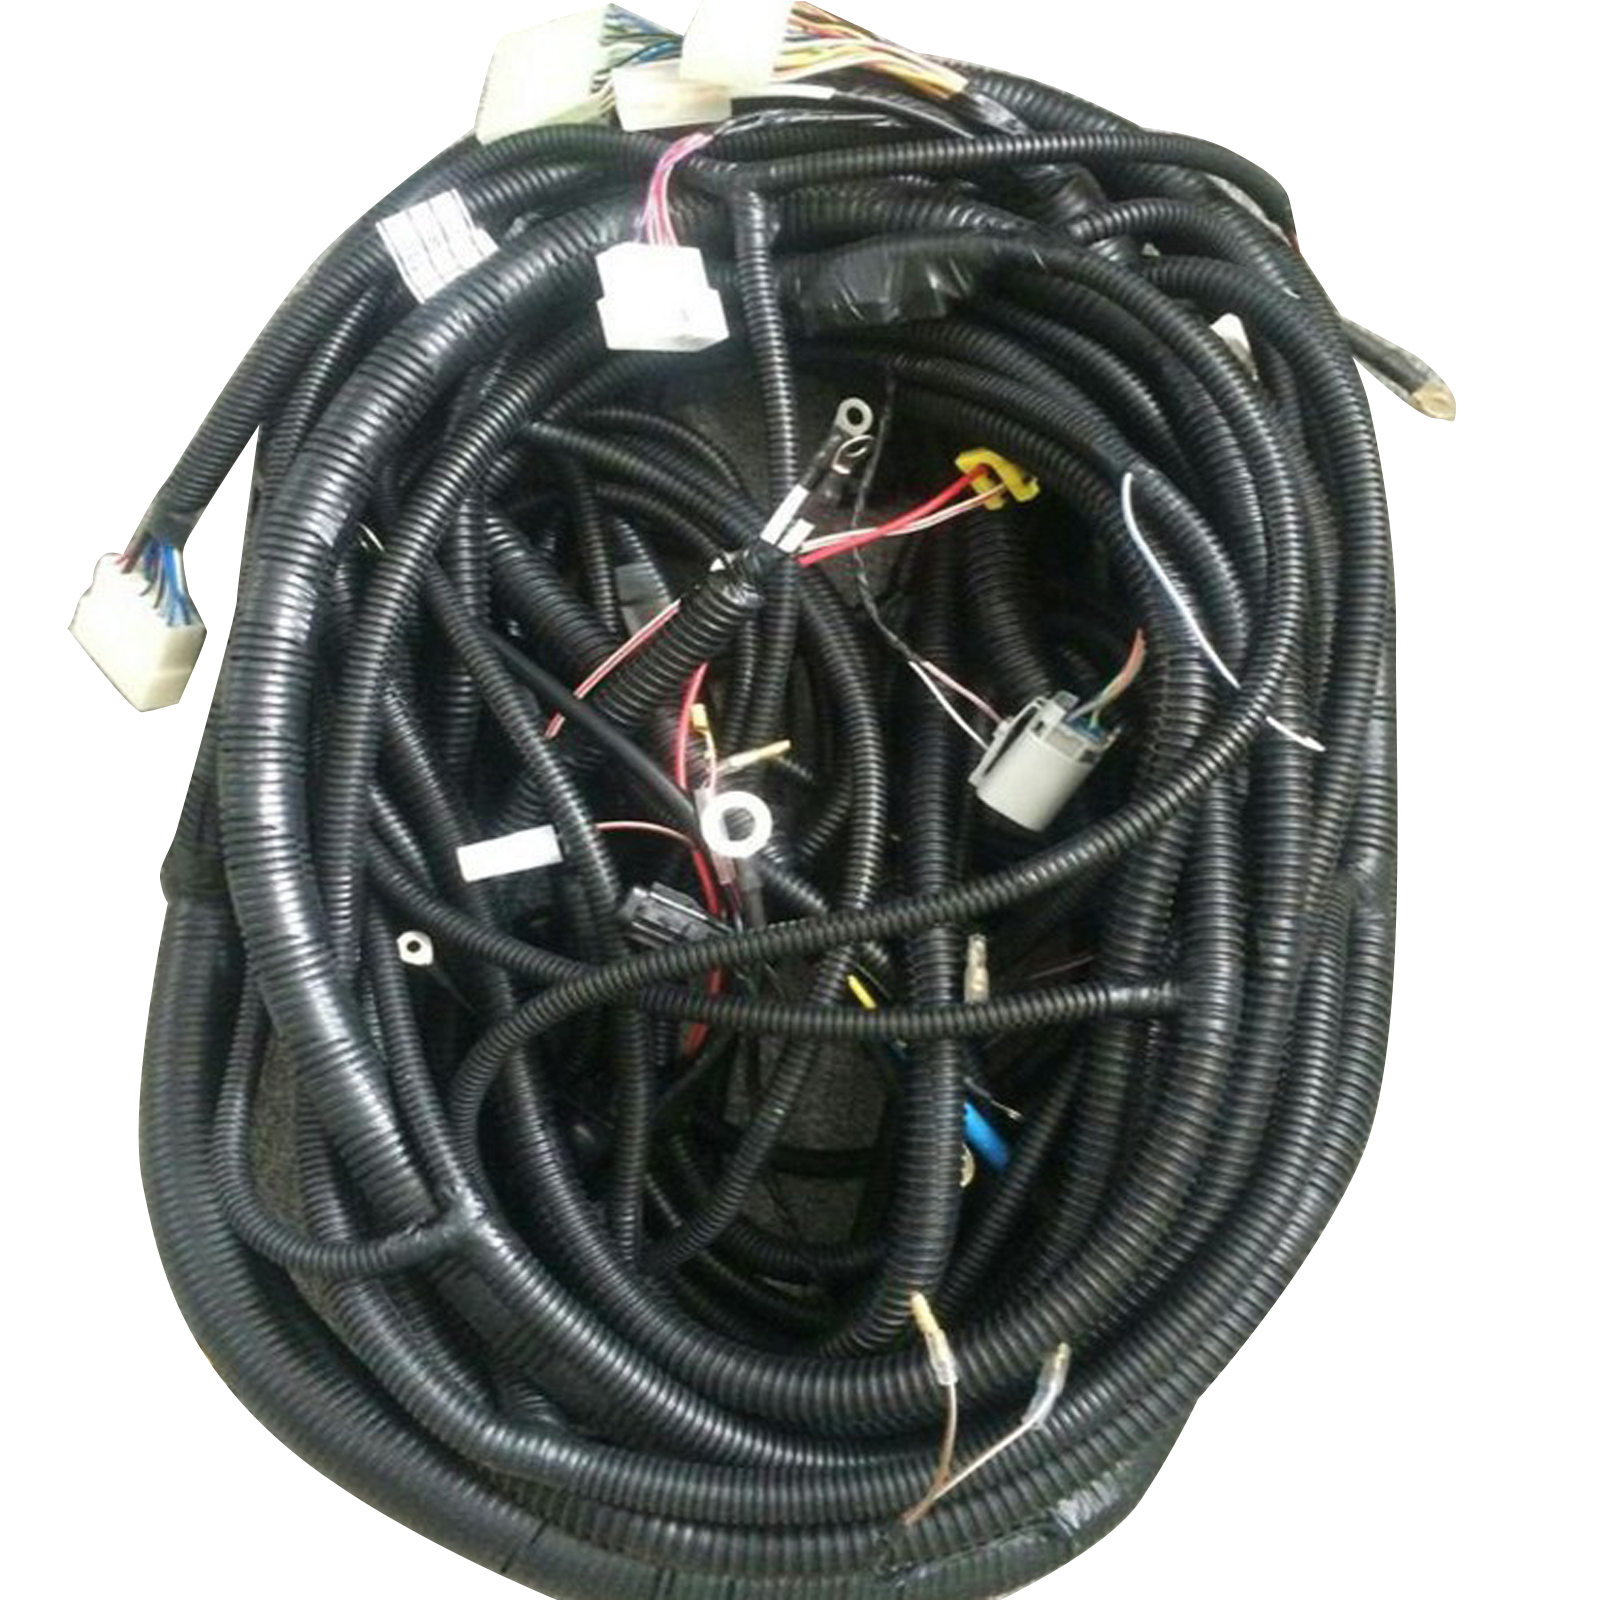 Details about Complete Wiring Harness For Daewoo Doosan DH220-7 Excavator on fall protection harness, oxygen sensor extension harness, electrical harness, pony harness, engine harness, cable harness, nakamichi harness, maxi-seal harness, amp bypass harness, pet harness, suspension harness, radio harness, obd0 to obd1 conversion harness, dog harness, battery harness, alpine stereo harness, safety harness,